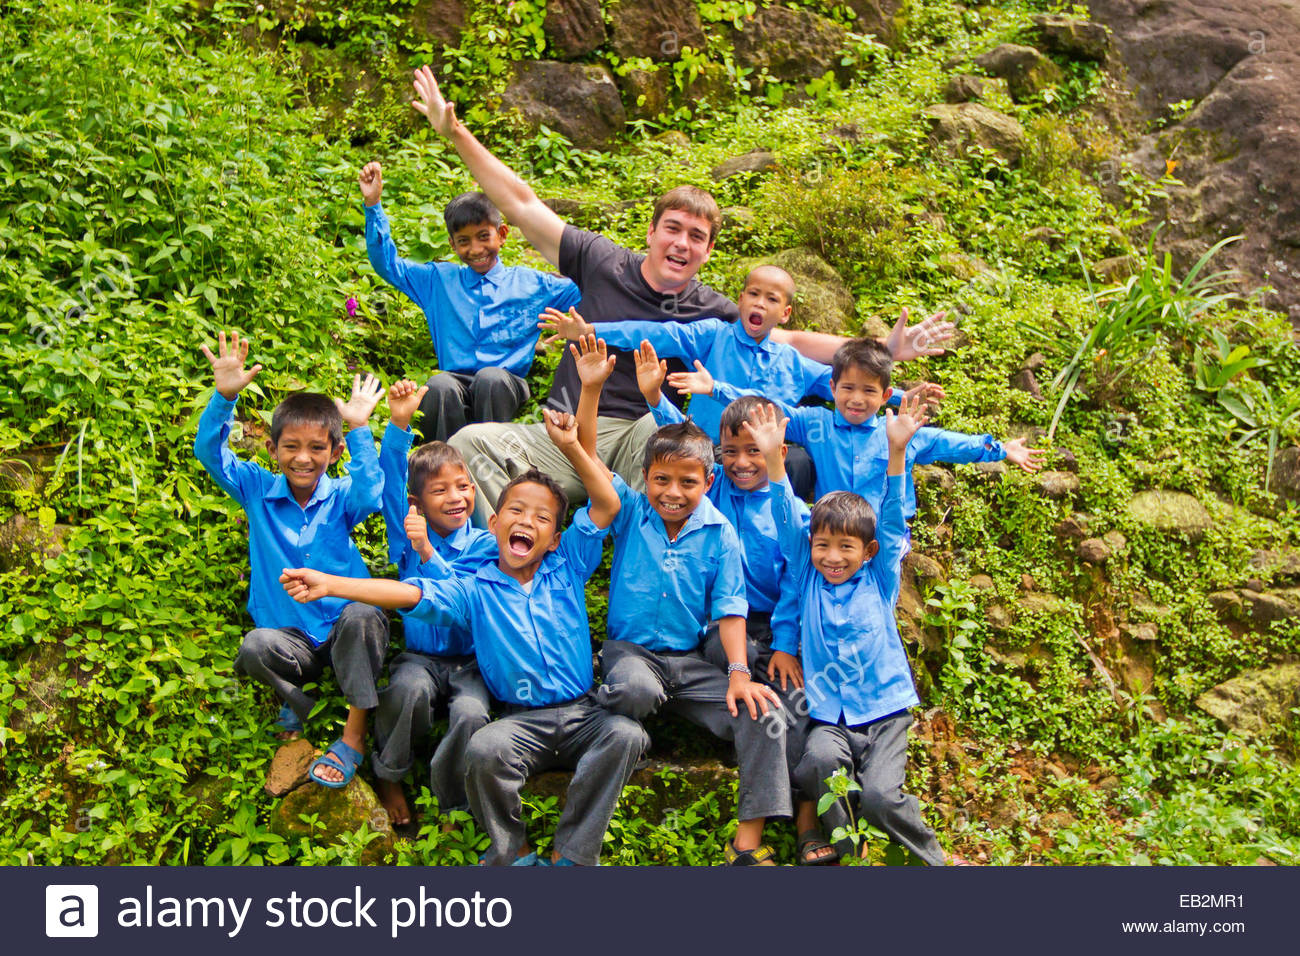 Photographer and weather personality, Mike Theiss, meeting and cutting up with local school boys in a small village. - Stock Image